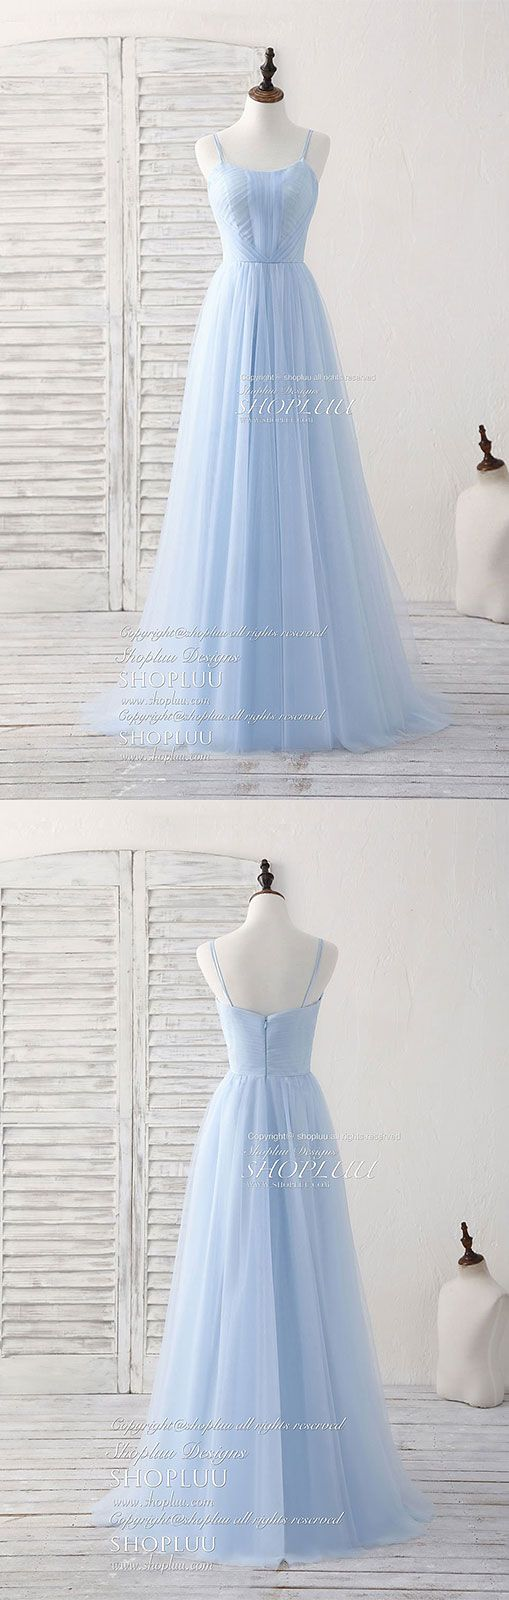 Simple blue tulle long prom dress blue bridesmaid dress, blue wedding party dress, simple blue dress, women fashion